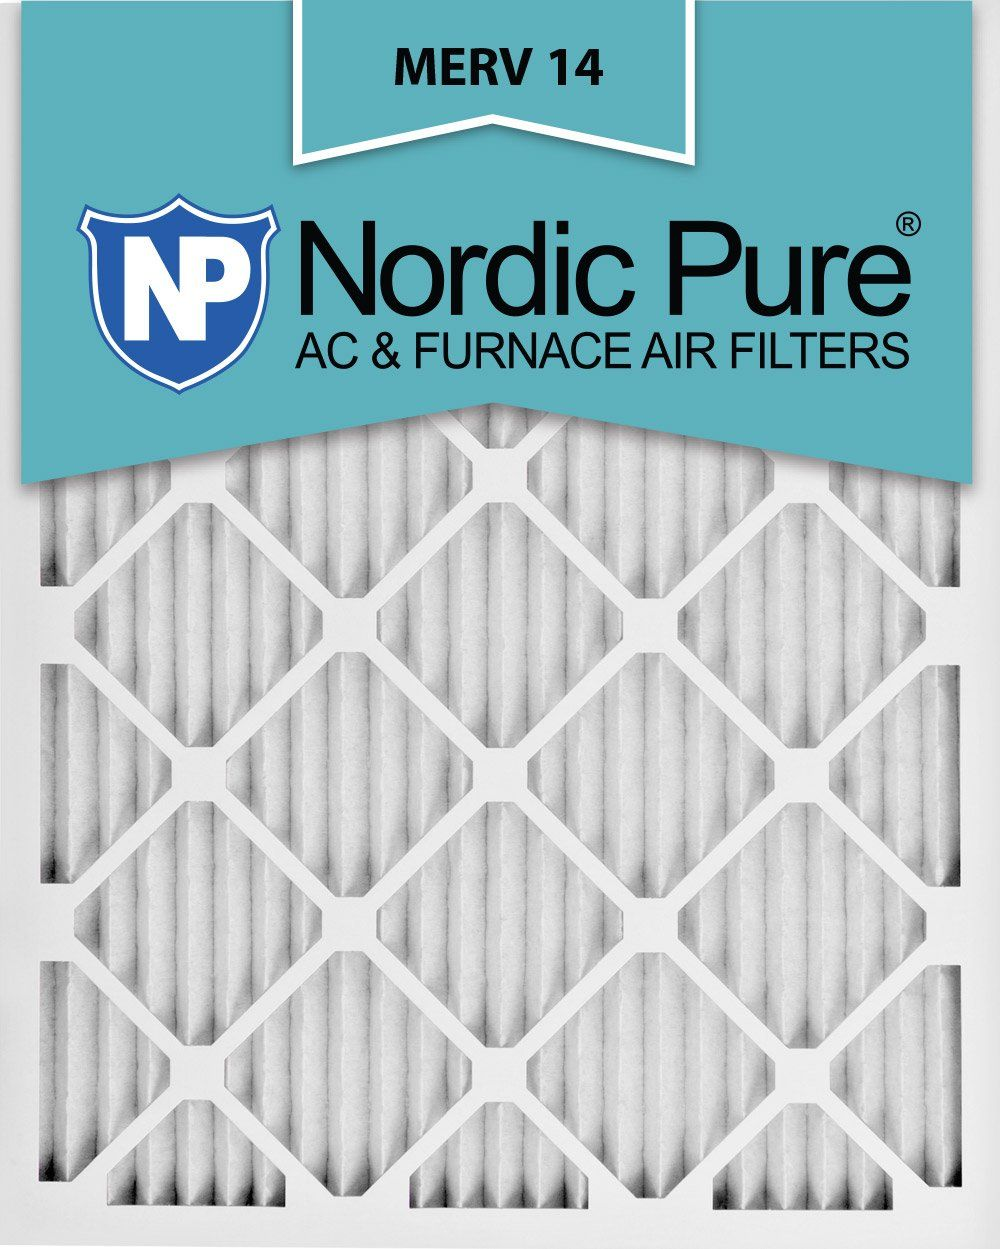 Nordic Pure 20x25x1 MERV 14 Pleated AC Furnace Air Filters